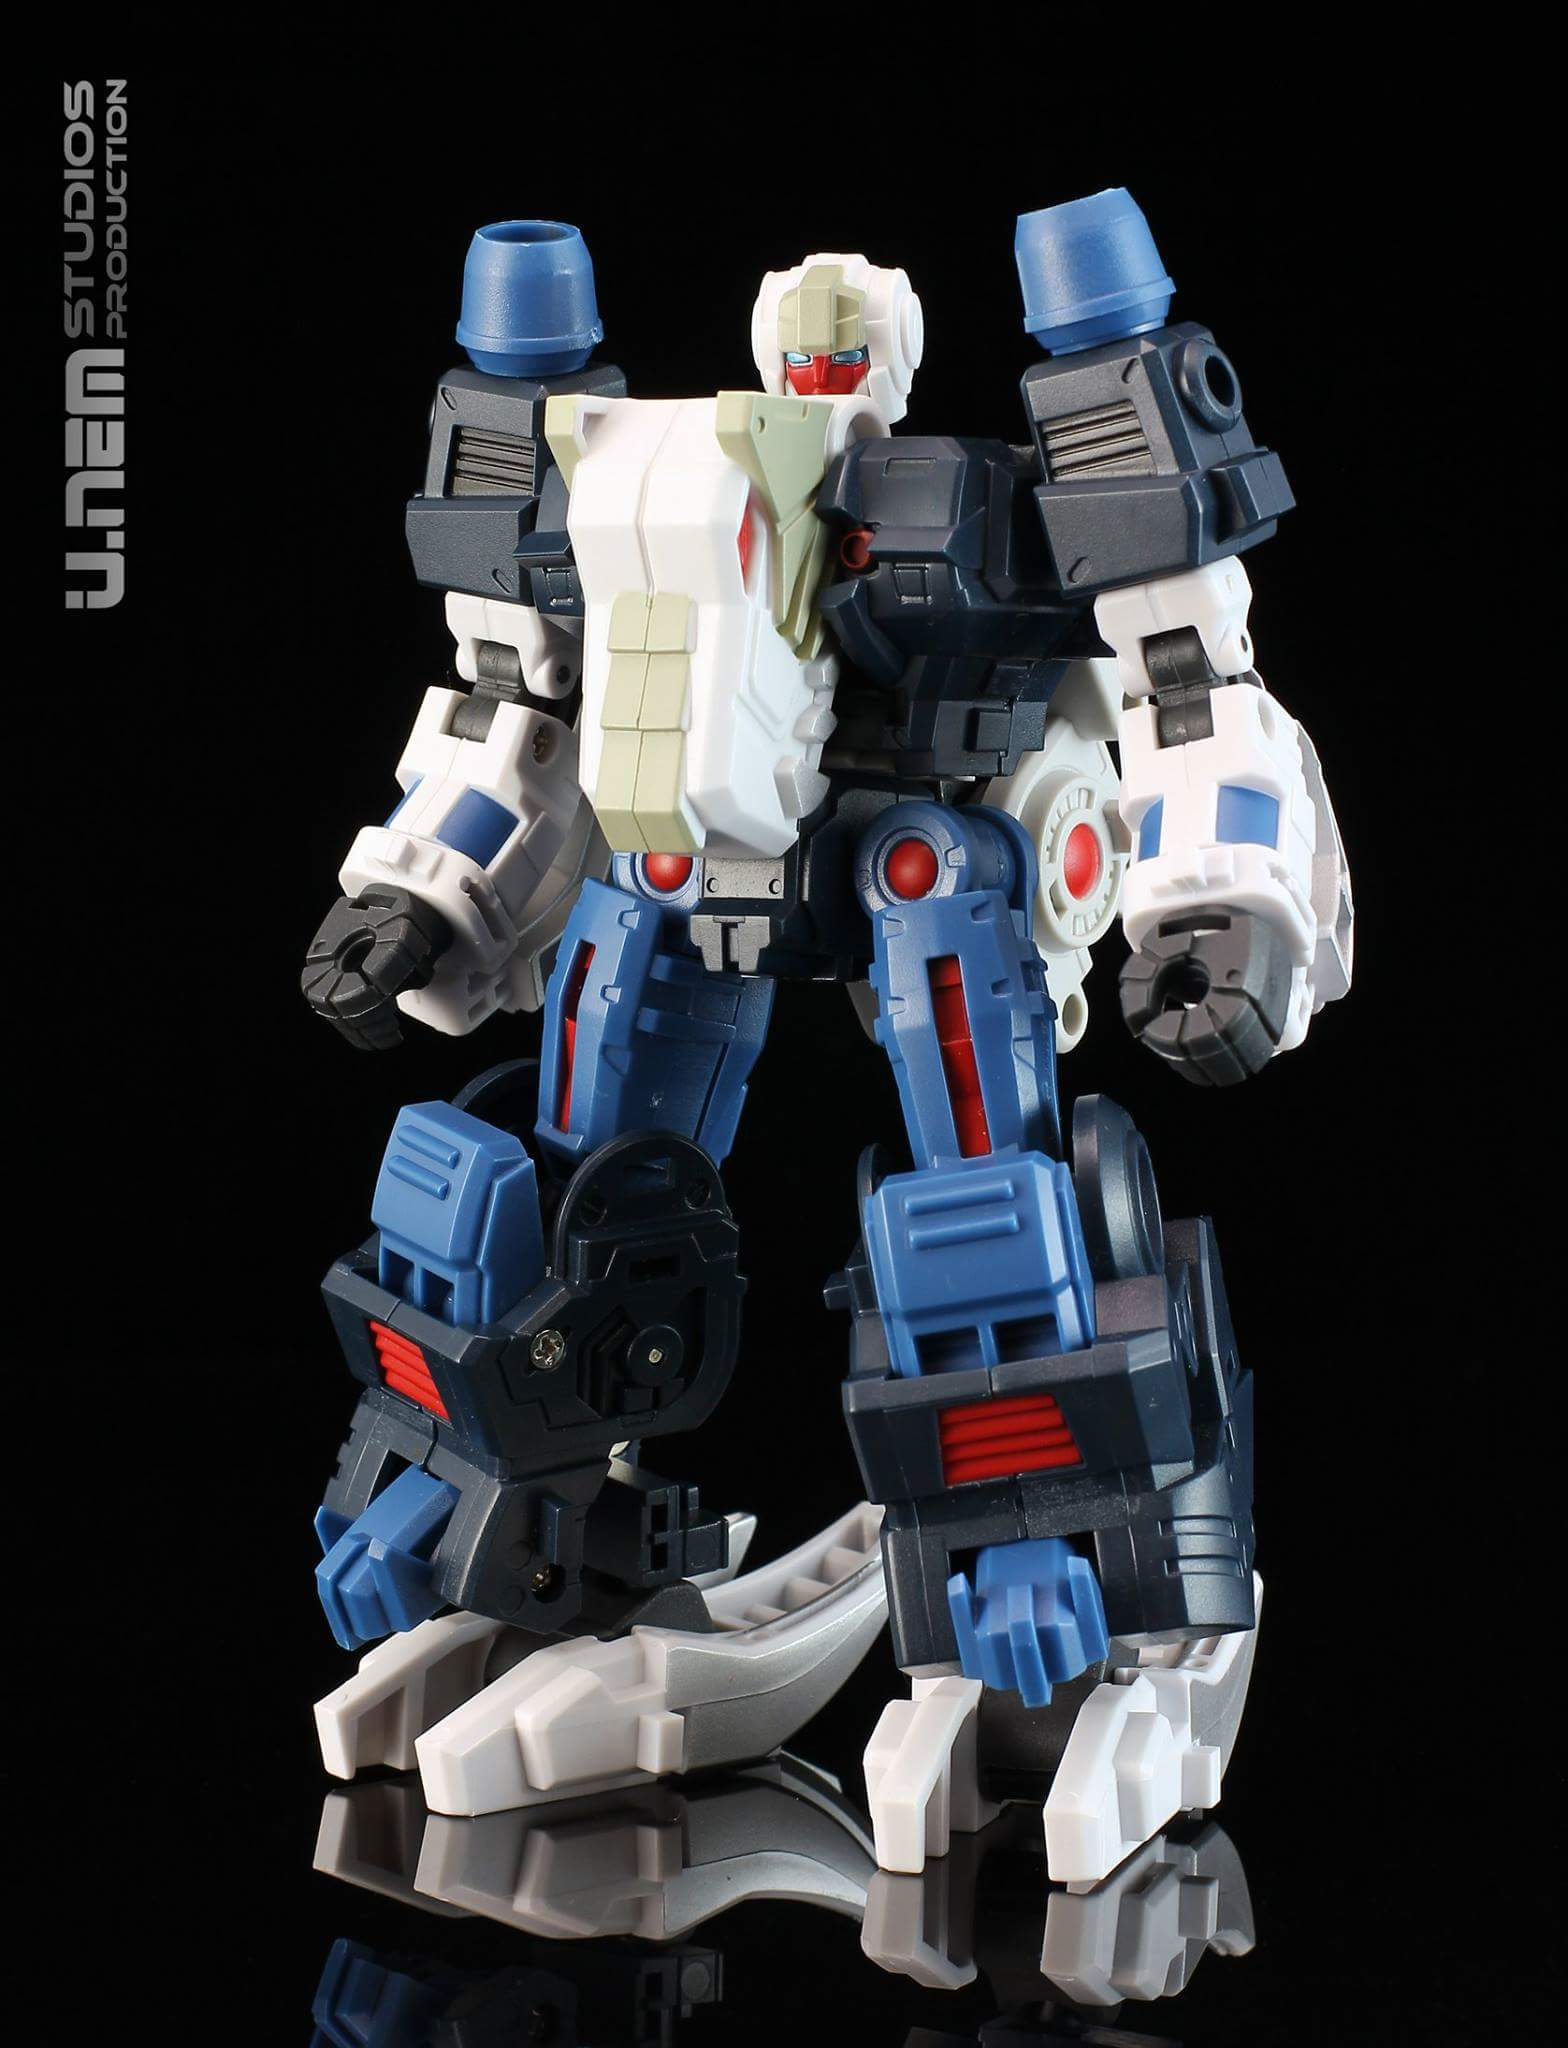 [FansProject] Produit Tiers - Jouet Saurus Ryu-oh aka Dinoking (Victory) | Monstructor (USA) - Page 3 KcknsZS5